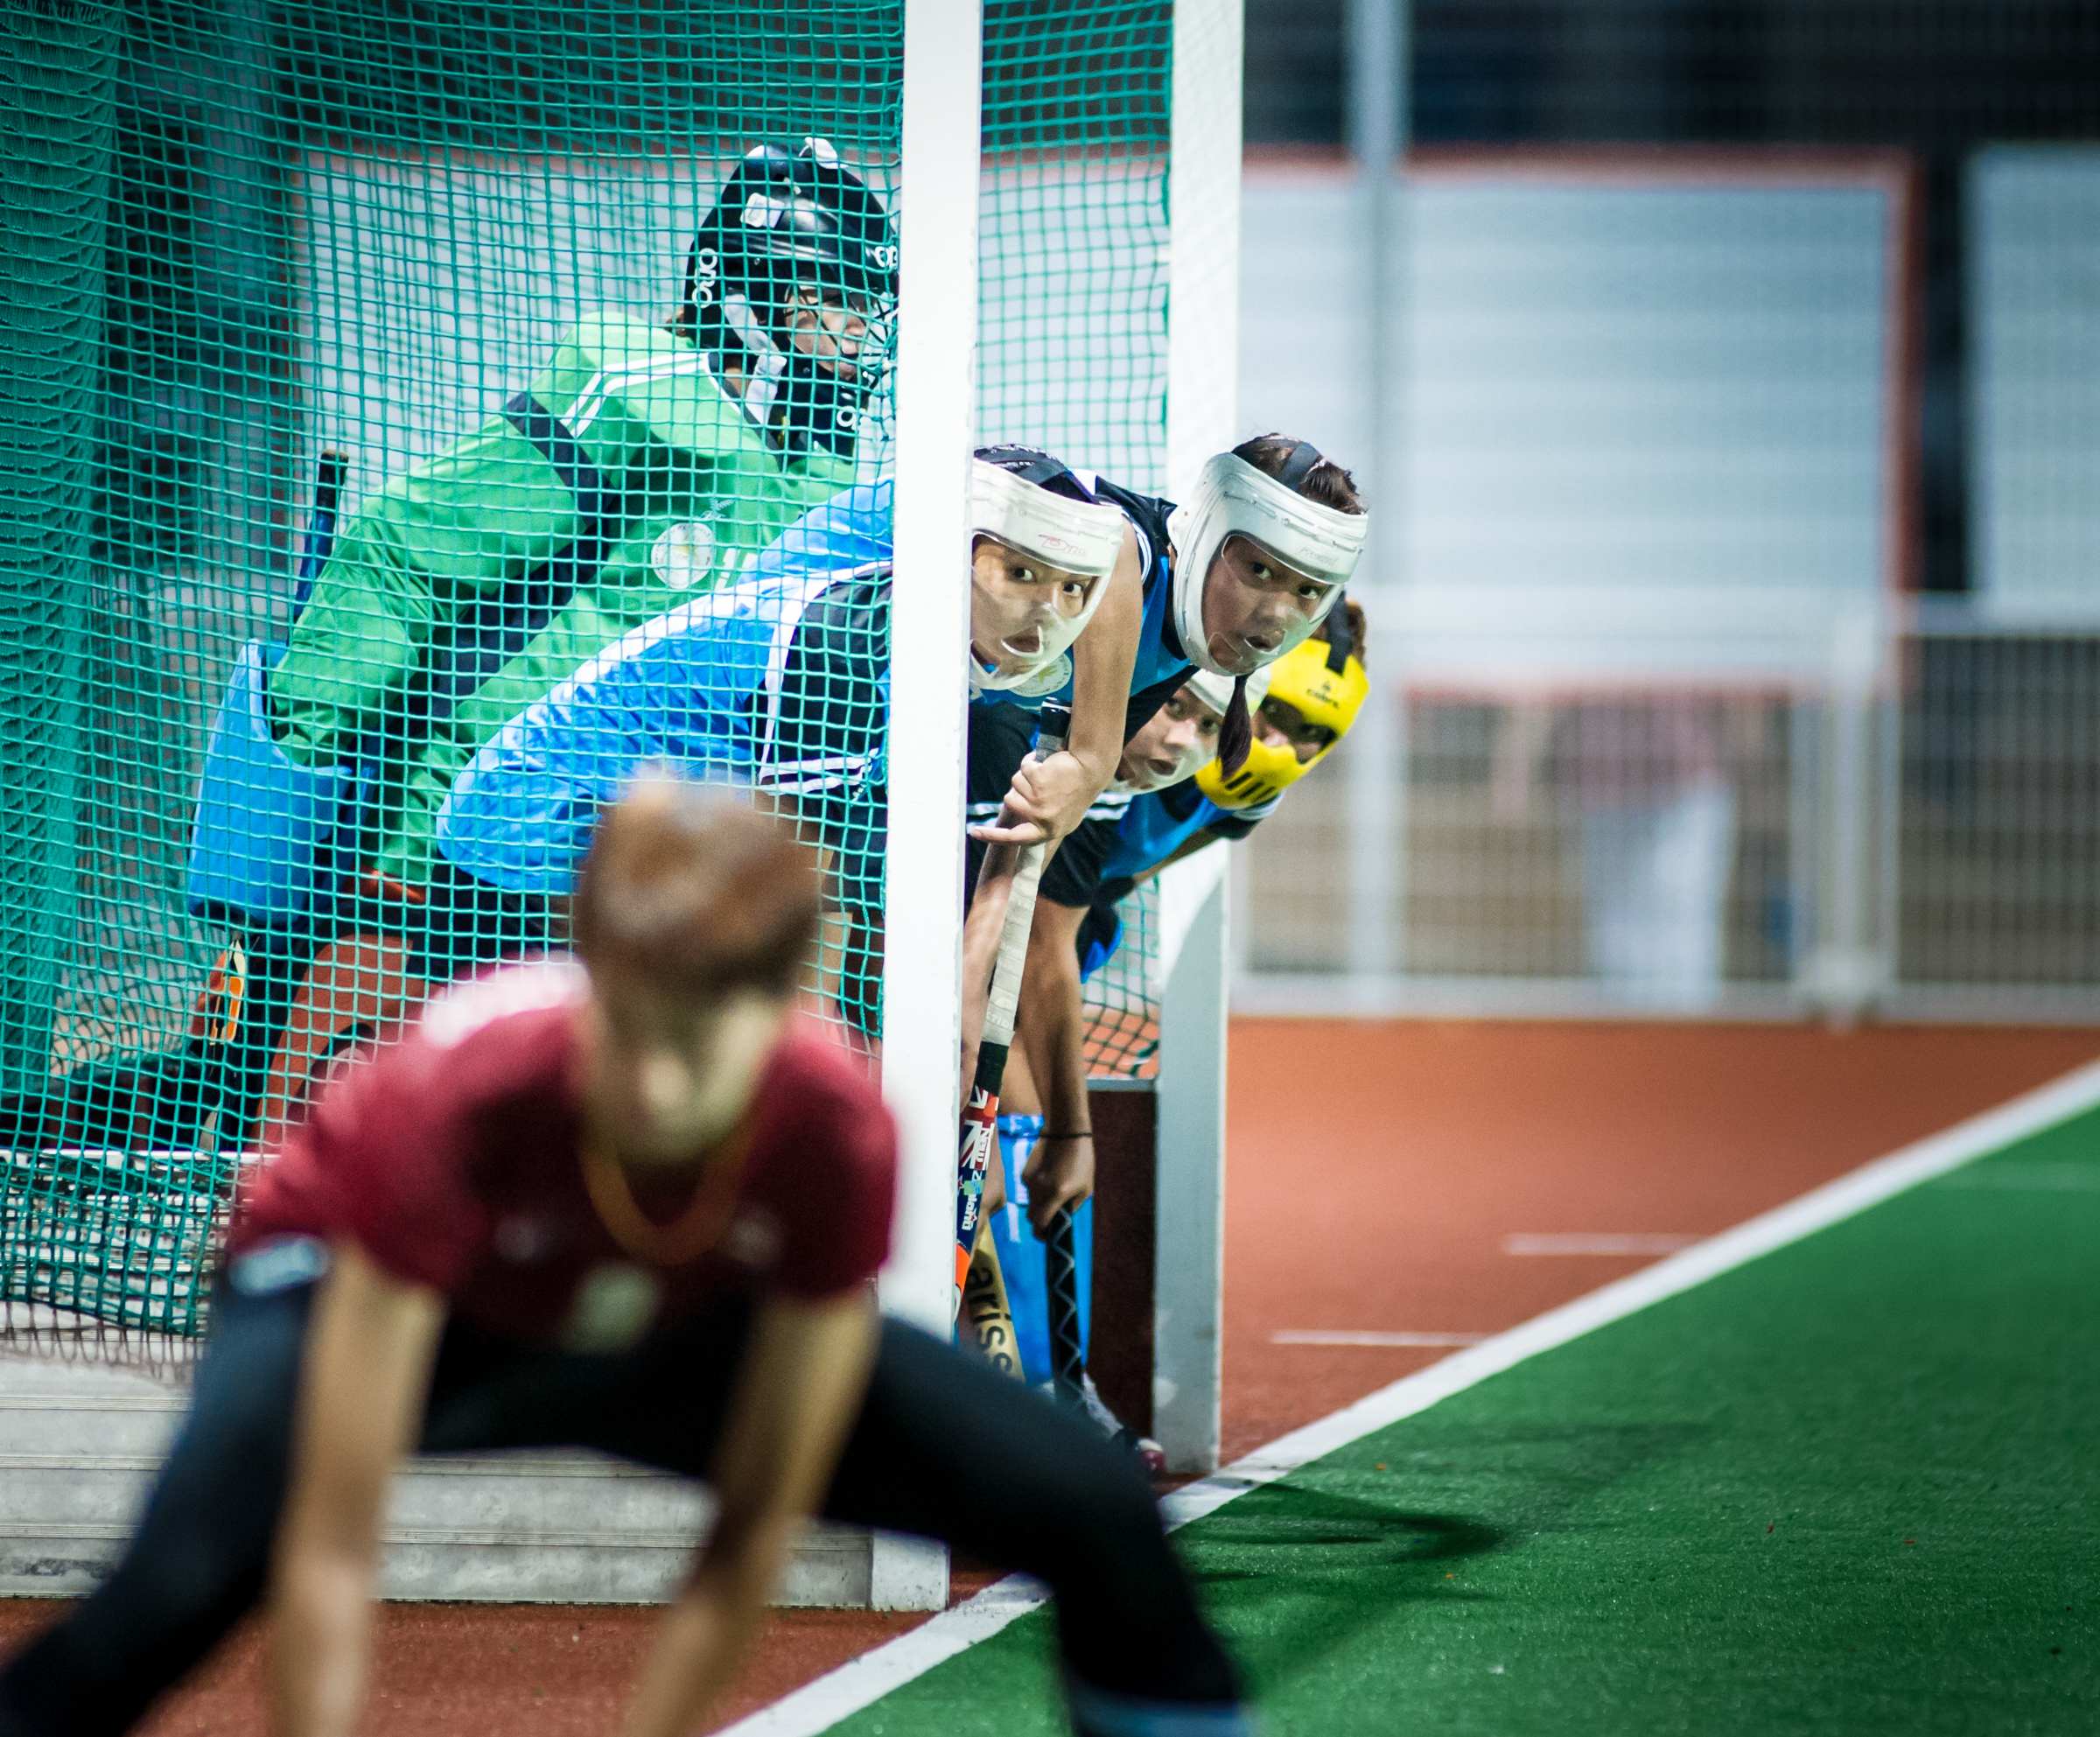 Cambodian players watch as a Thai player prepares to take a corner penalty during a World Hockey League match at the Sengkang Sports Complex.